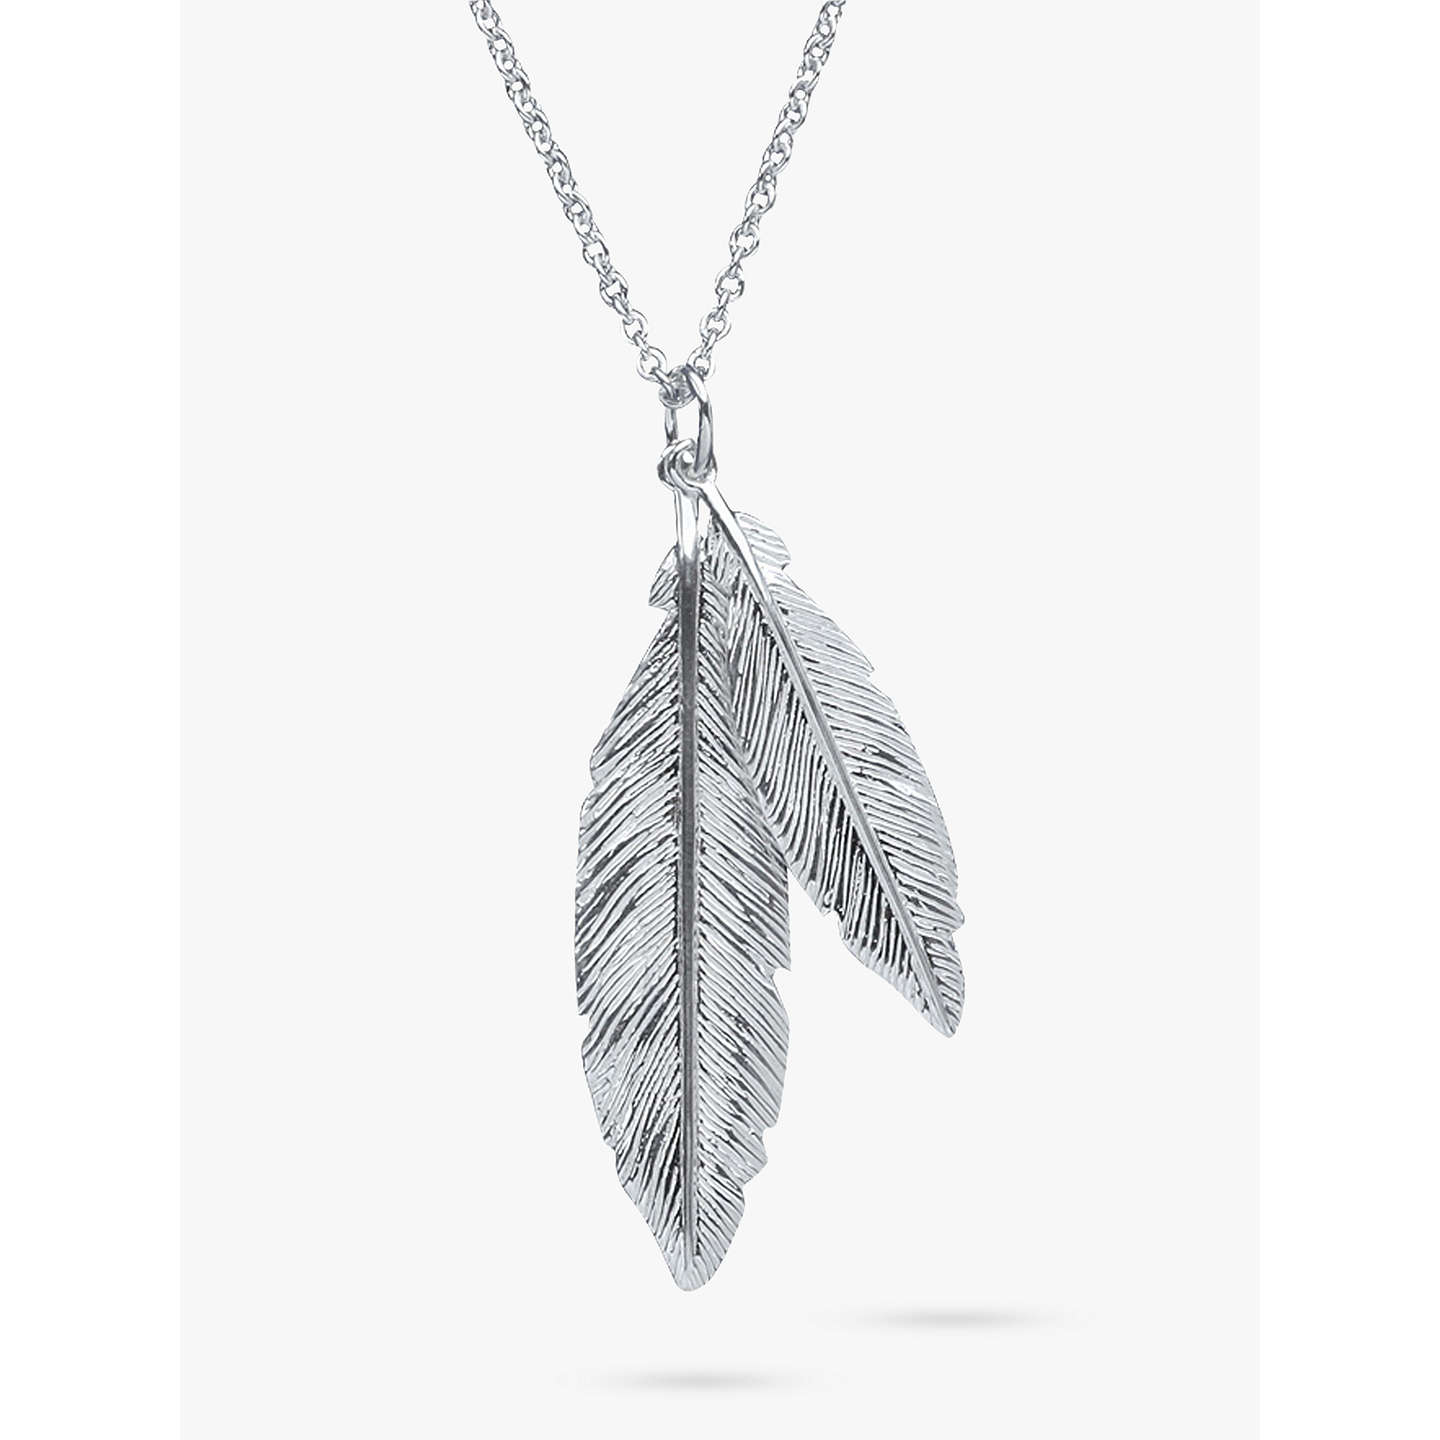 Nina b sterling silver double feather pendant necklace silver at buynina b sterling silver double feather pendant necklace silver online at johnlewis aloadofball Images